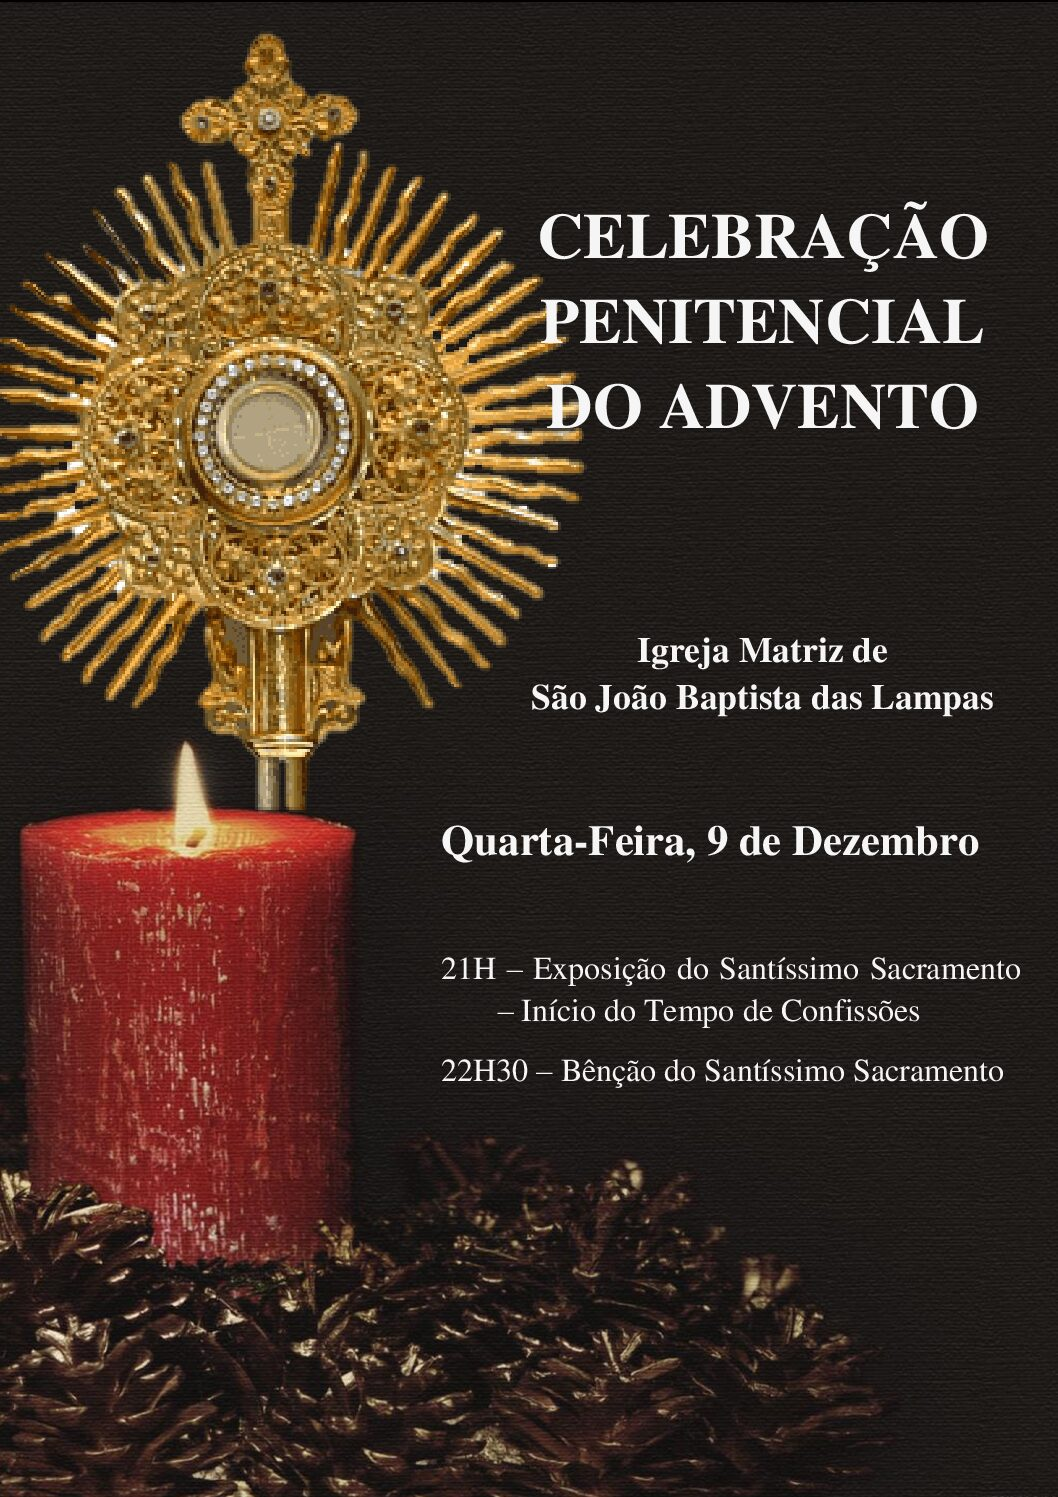 Celebração Penitencial do Advento.